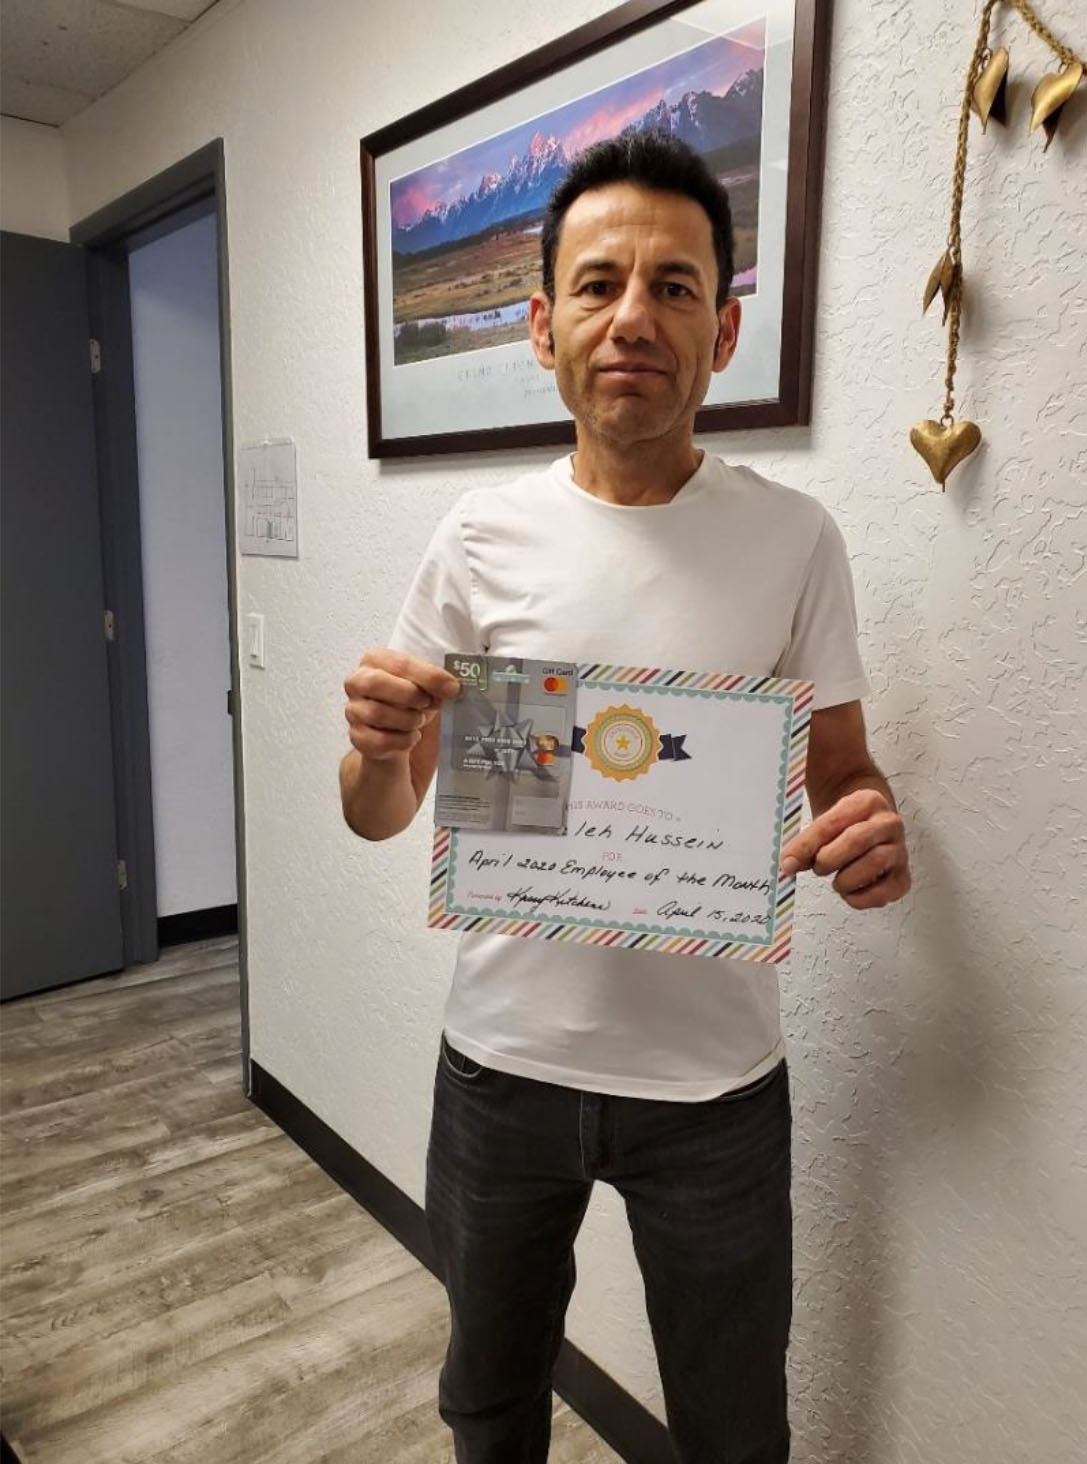 Saleh Hussien holding an award for 'Employee of the month'